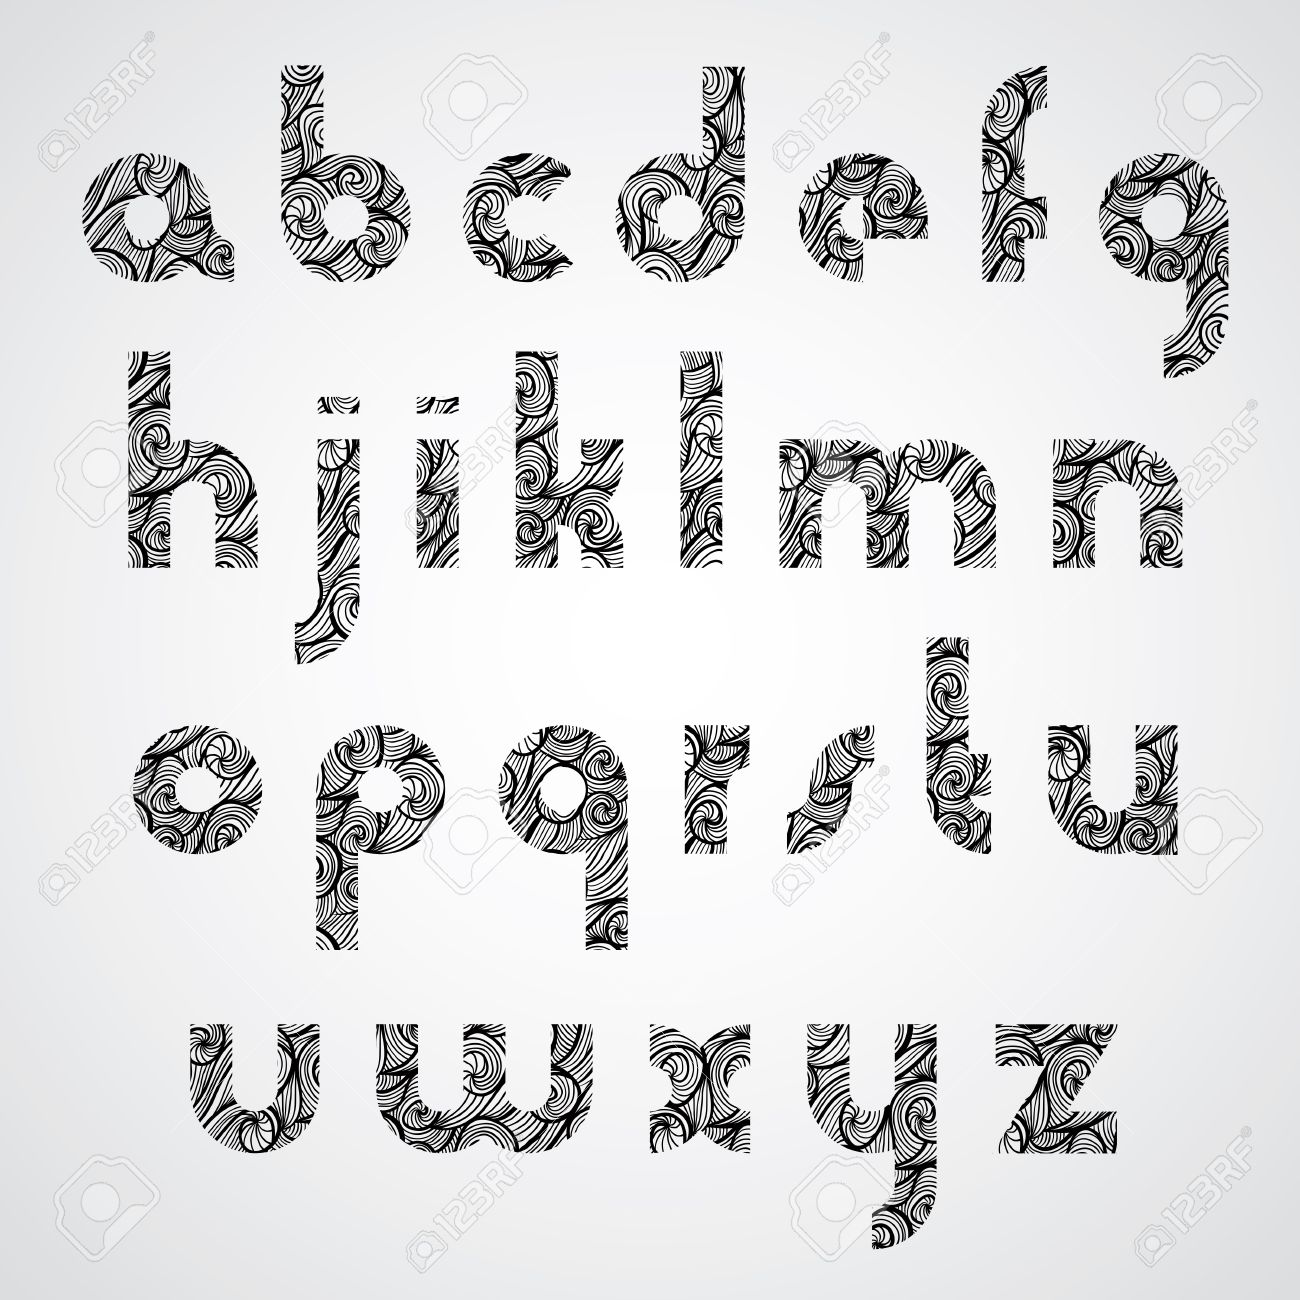 Modern Shape Letters, Digital Style Contemporary Font With Hand ...